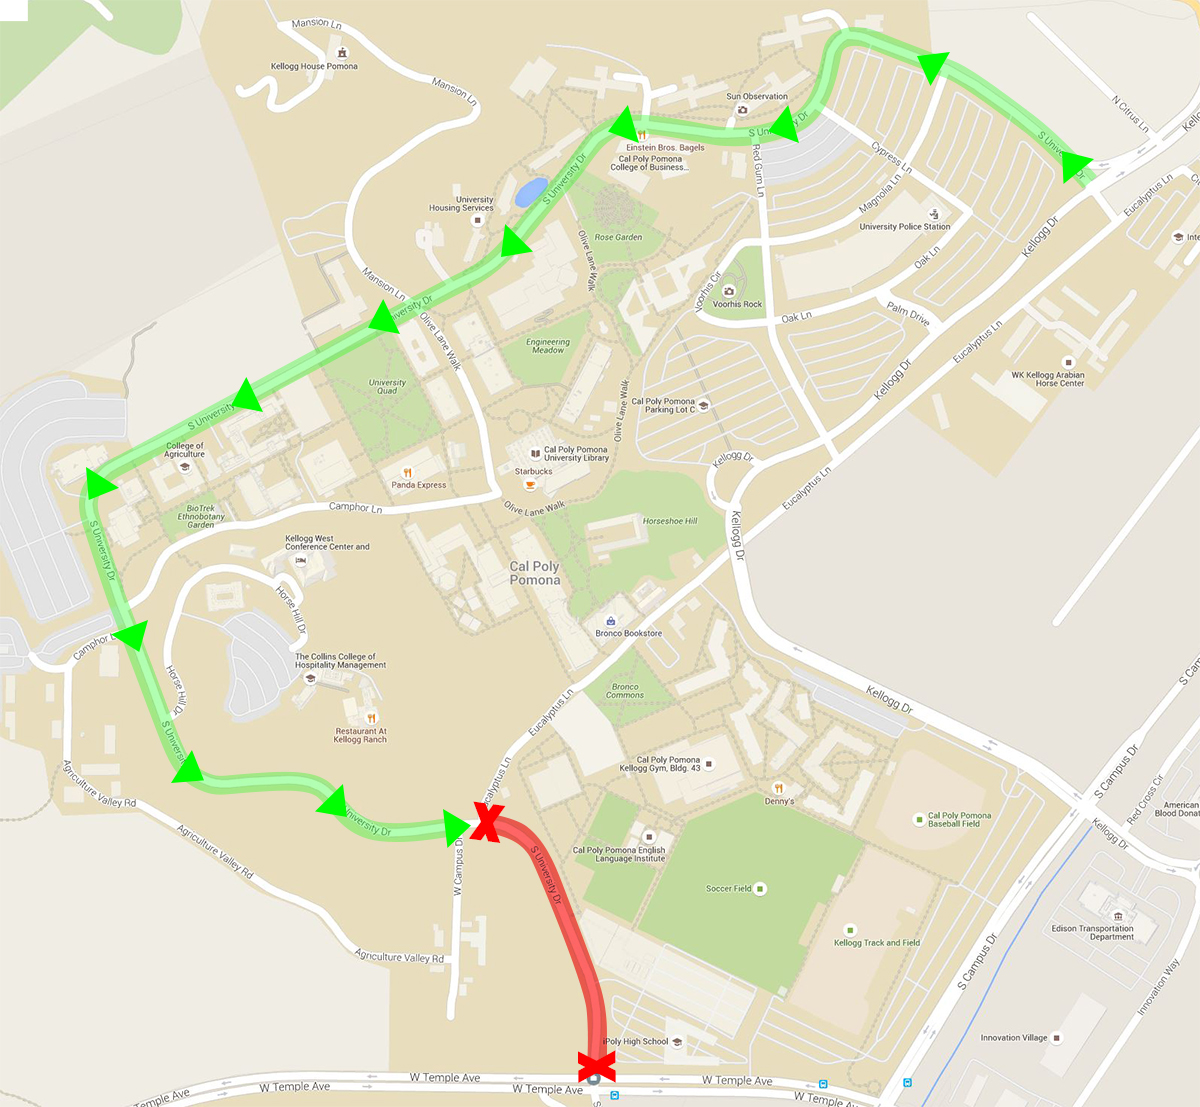 The green highlighted route on the map indicates the University Drive detour. The red indicates the closed portion. Click on the map for a larger view.